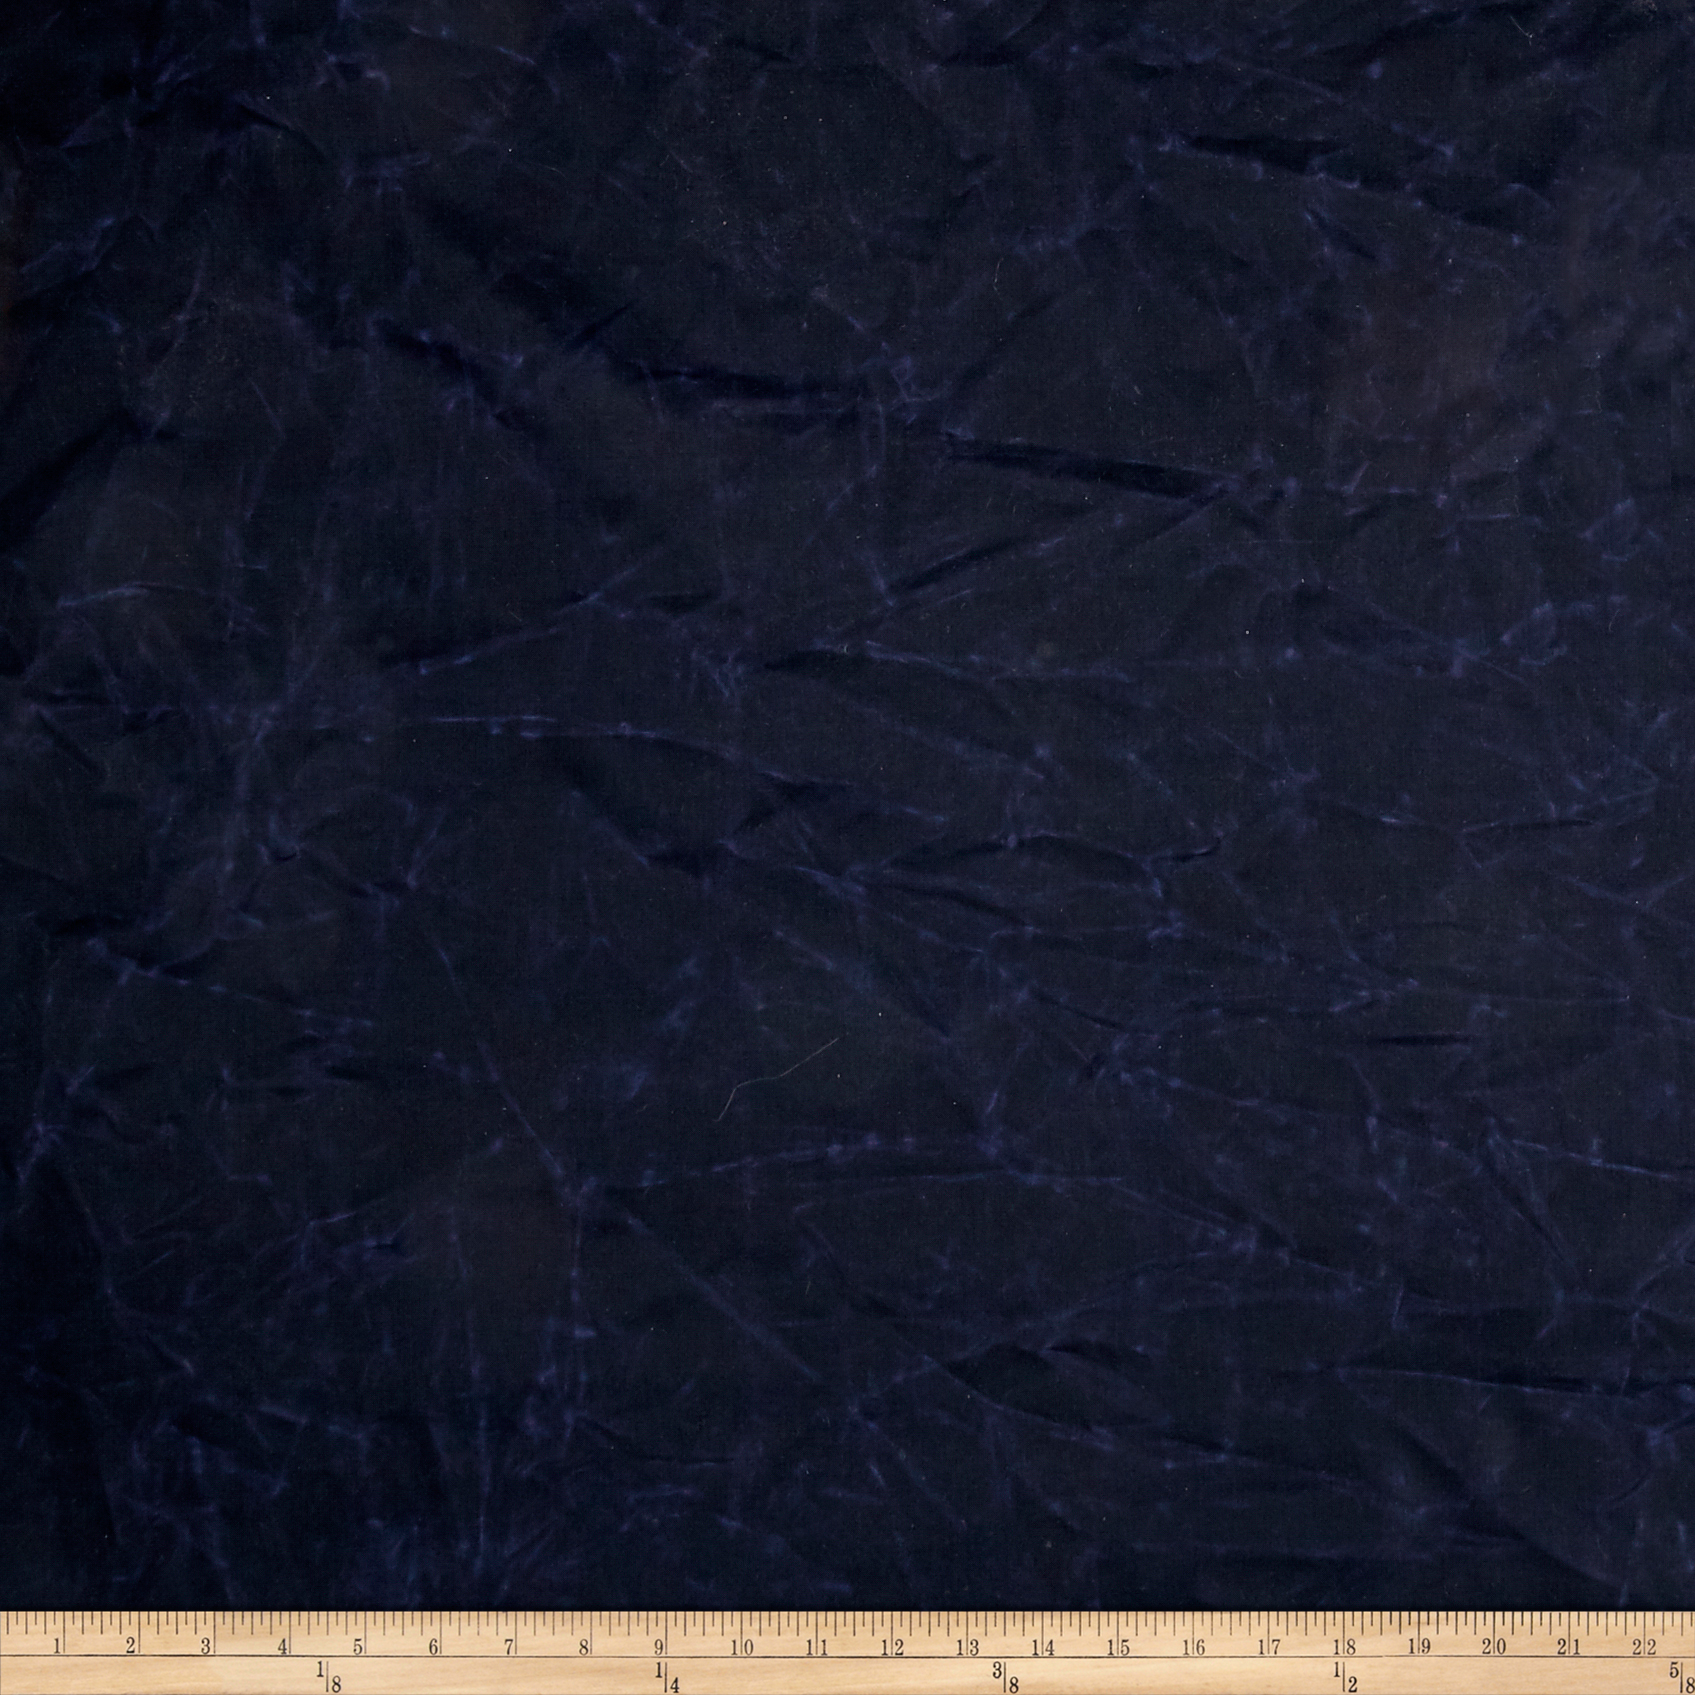 9.9 oz Waxed Canvas Navy Fabric by Carr in USA